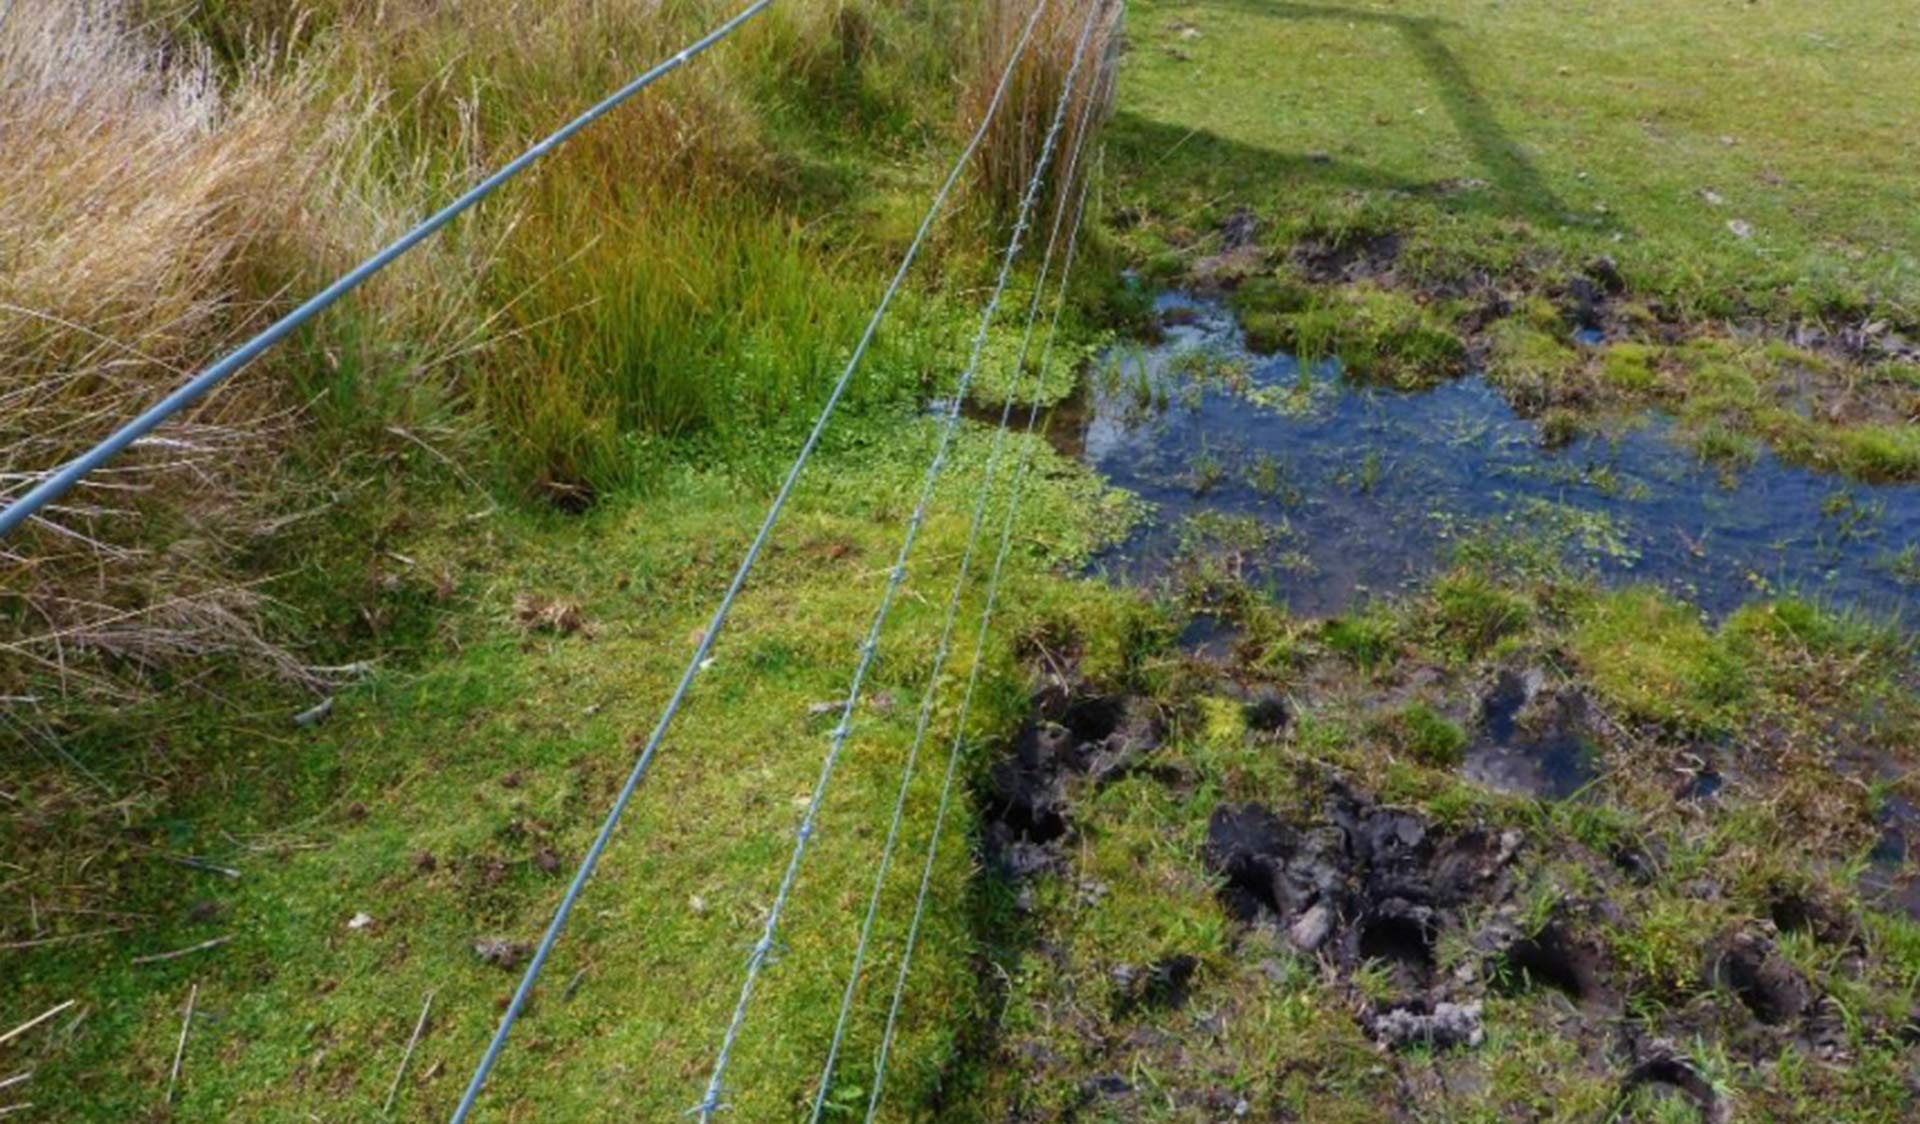 Alpine National Park exclusion plot showing feral horse damage outside of fence